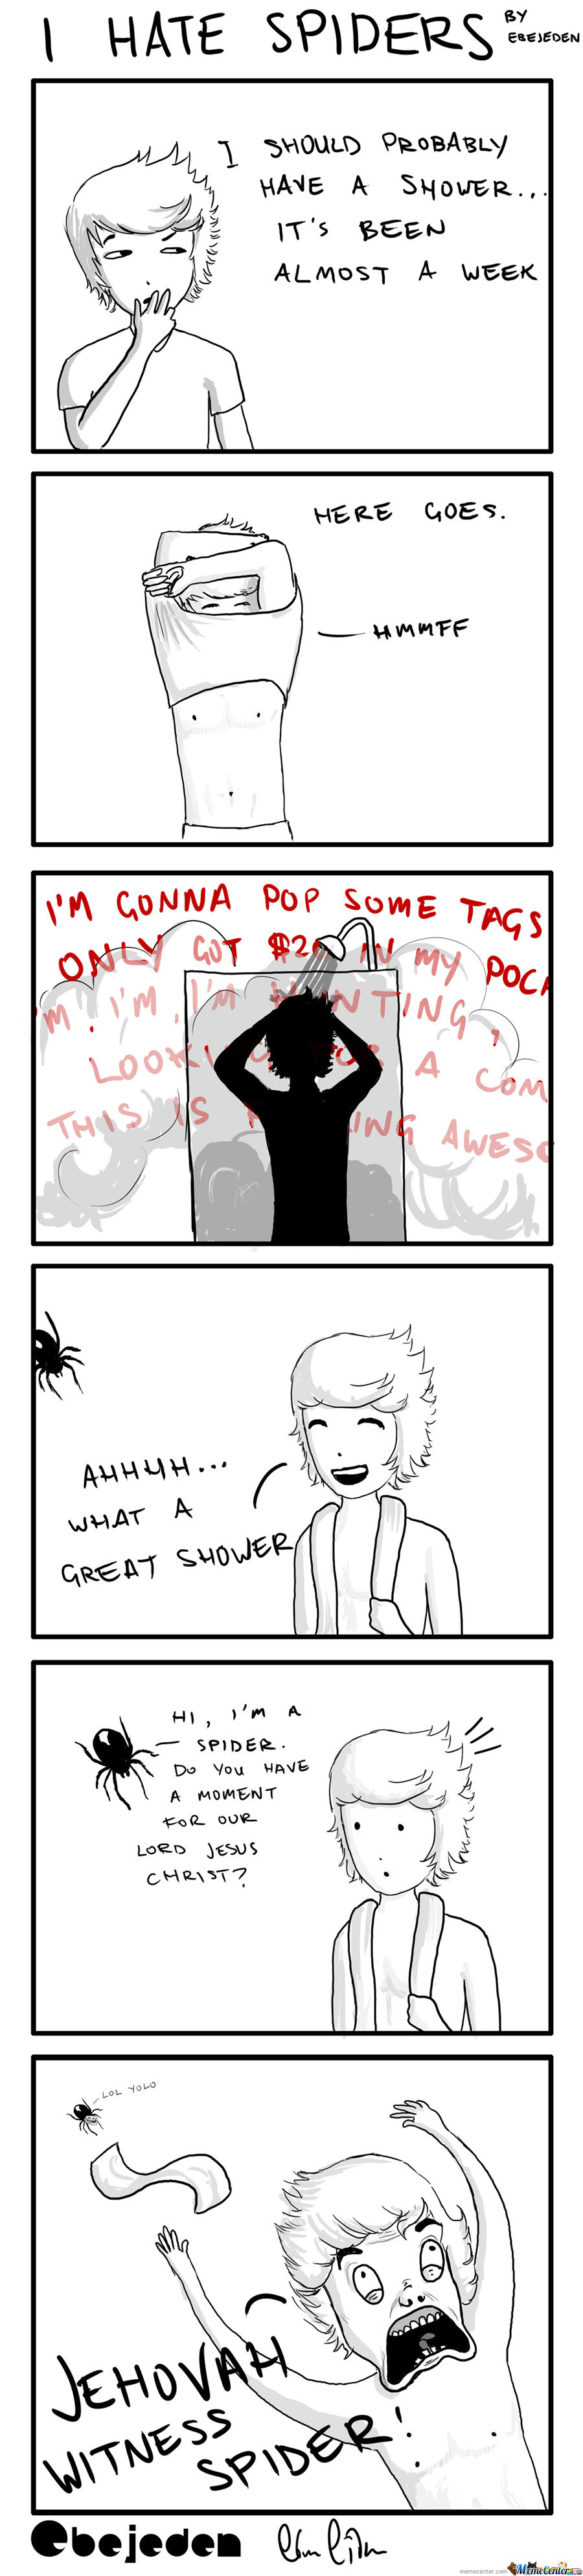 I Hate Spiders